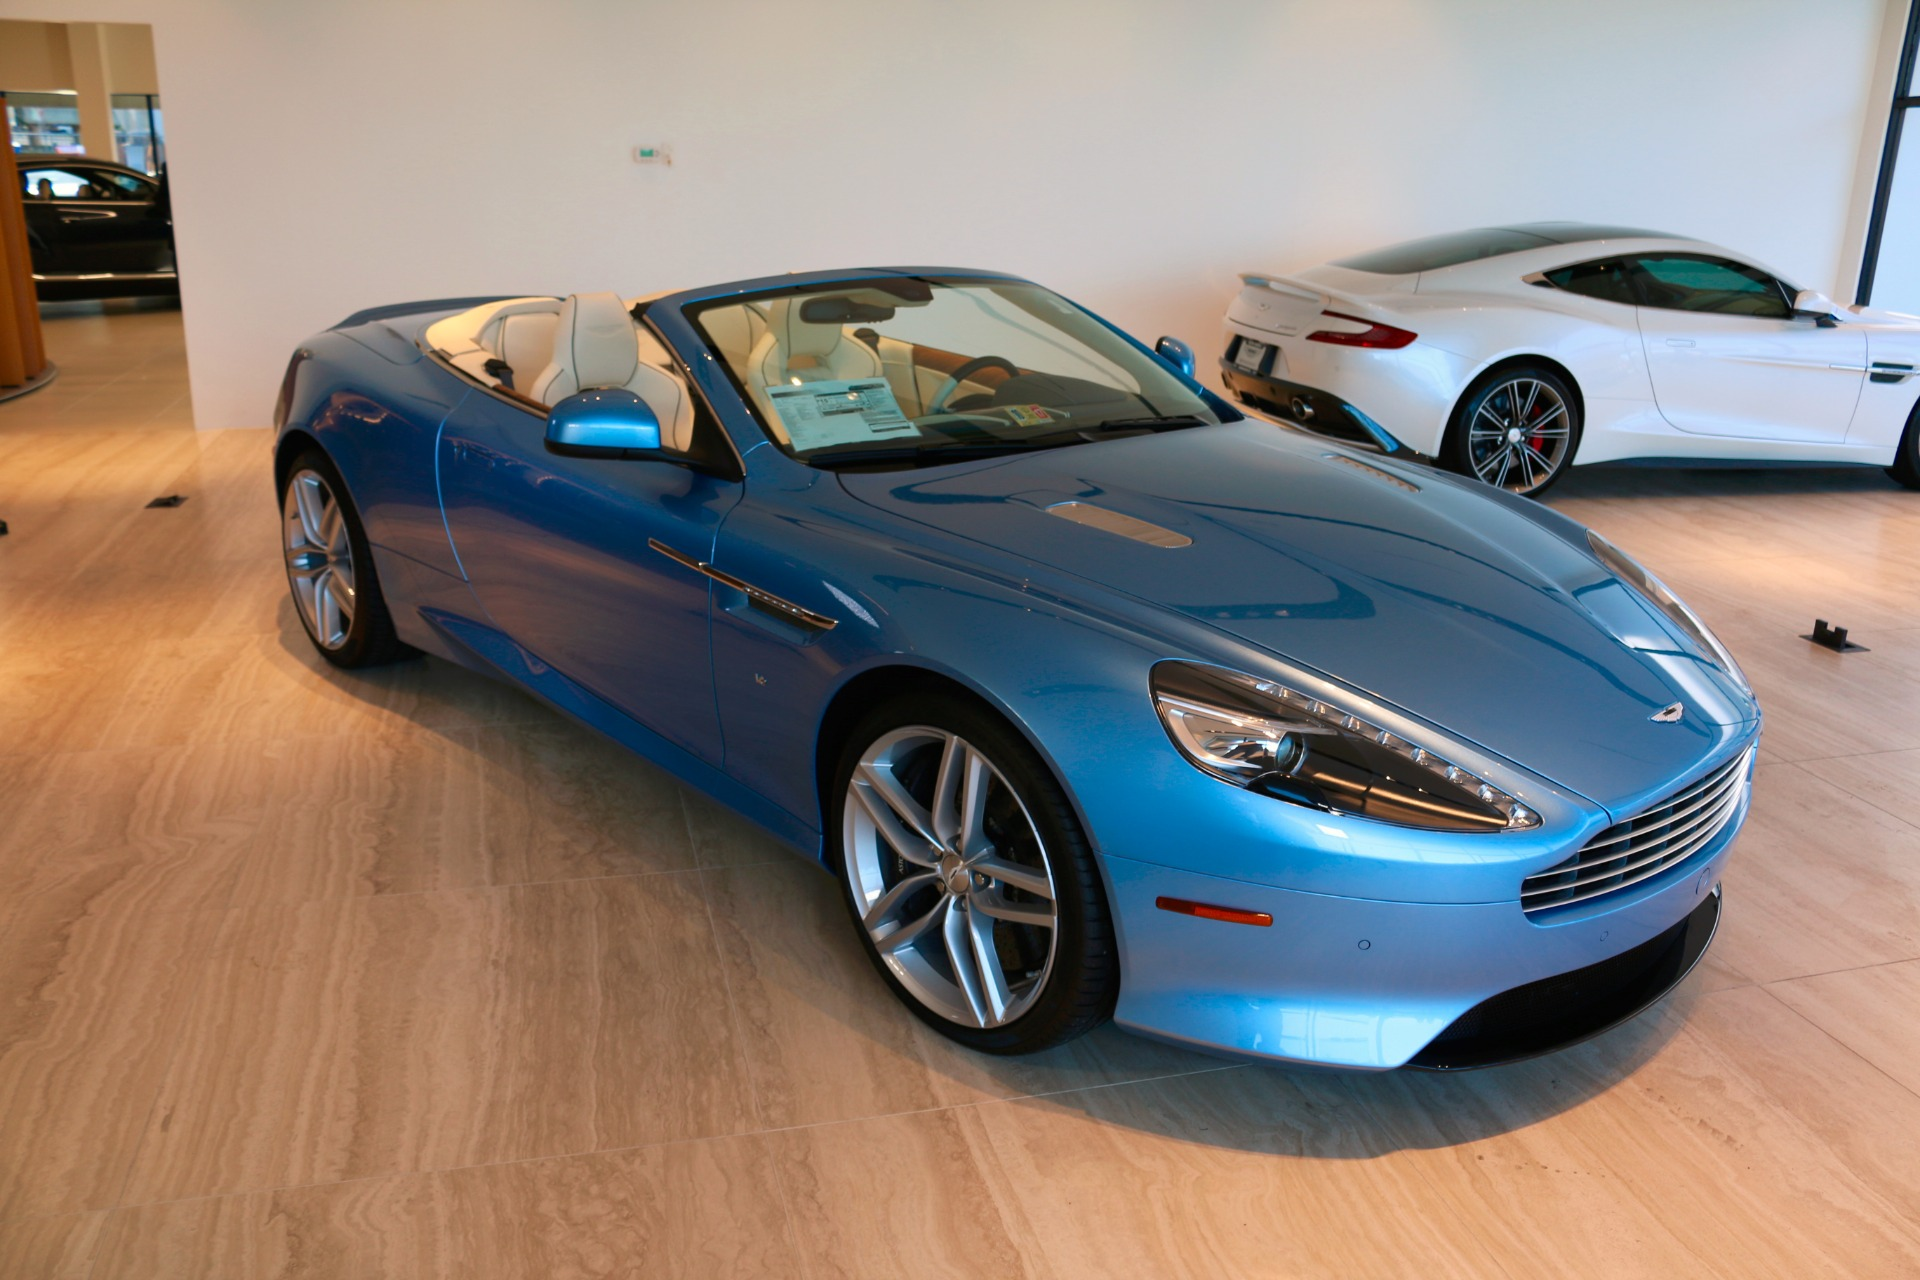 aston martin db9 gt with 2016 Aston Martin Db9 Gt Volante C 600 on Abstract Oil Painting additionally Aston Martin Db11 2016 Review First Drive also 7 Affordable Super Cars 100k further Bentley Continental Gt Interior besides Real Madrid Logo.